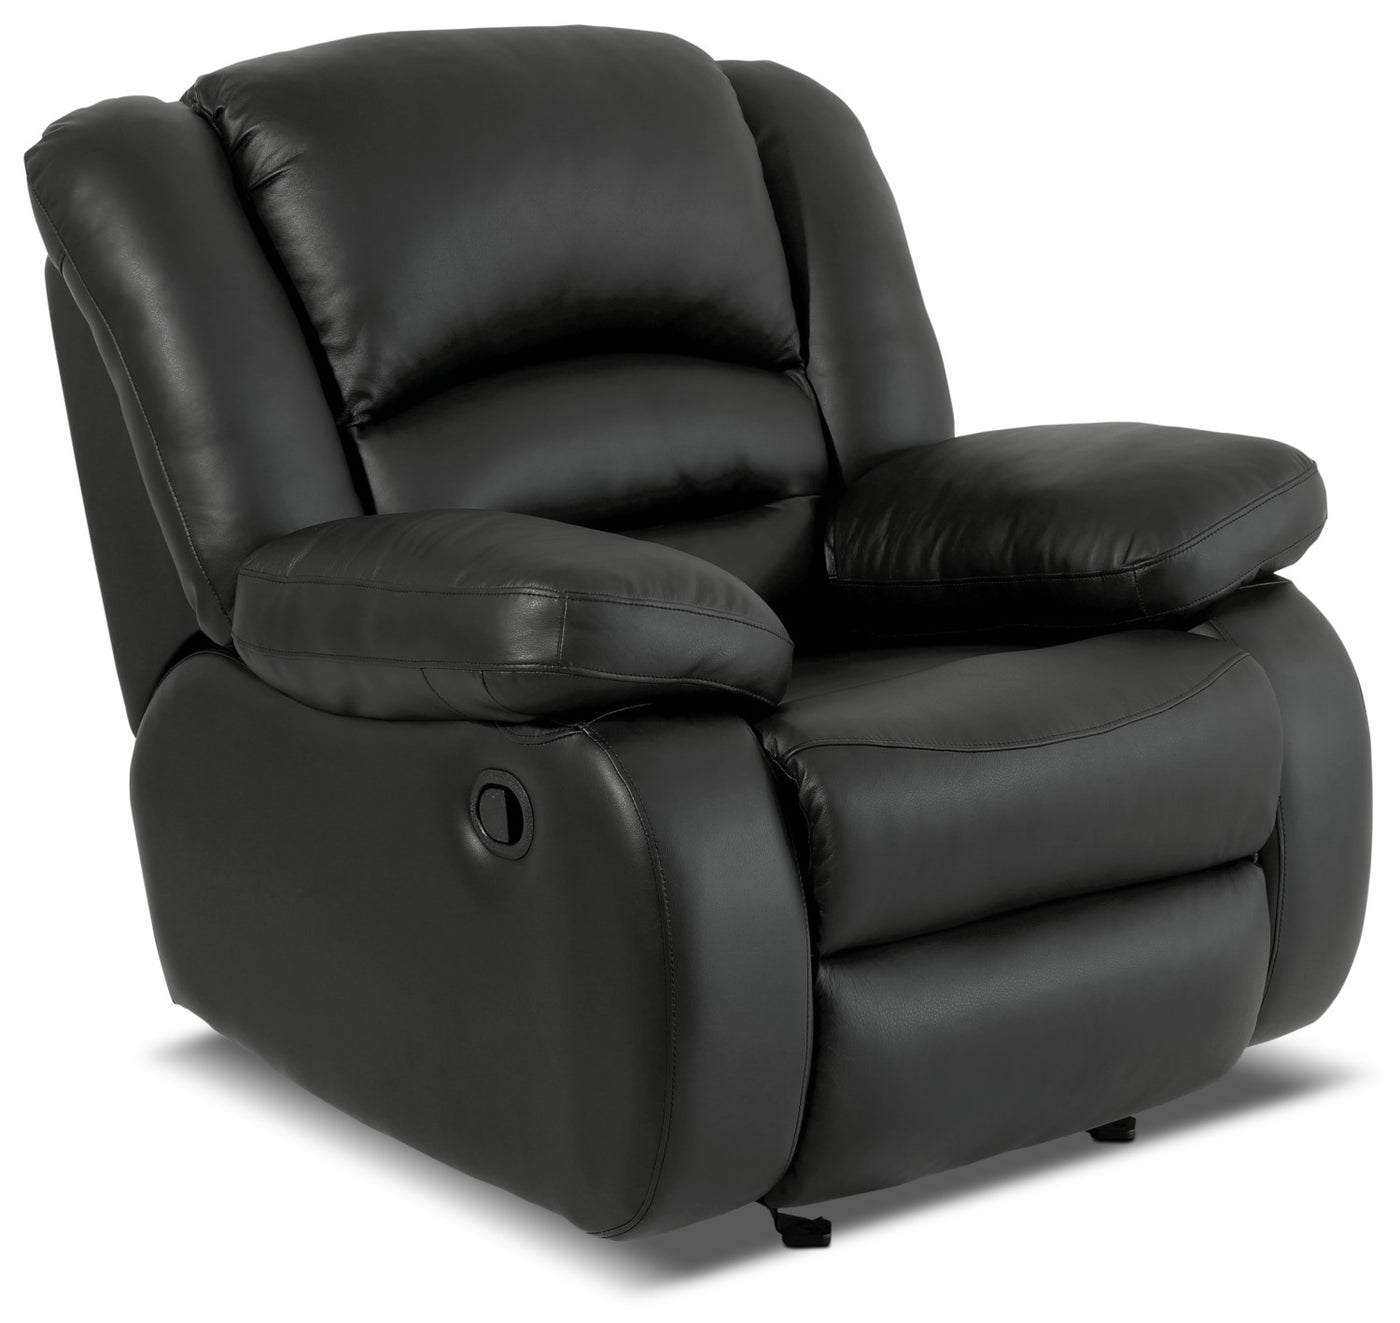 Toreno Genuine Leather Reclining Glider Chair Black The Brick Chic Original Hovering Hover To Zoom